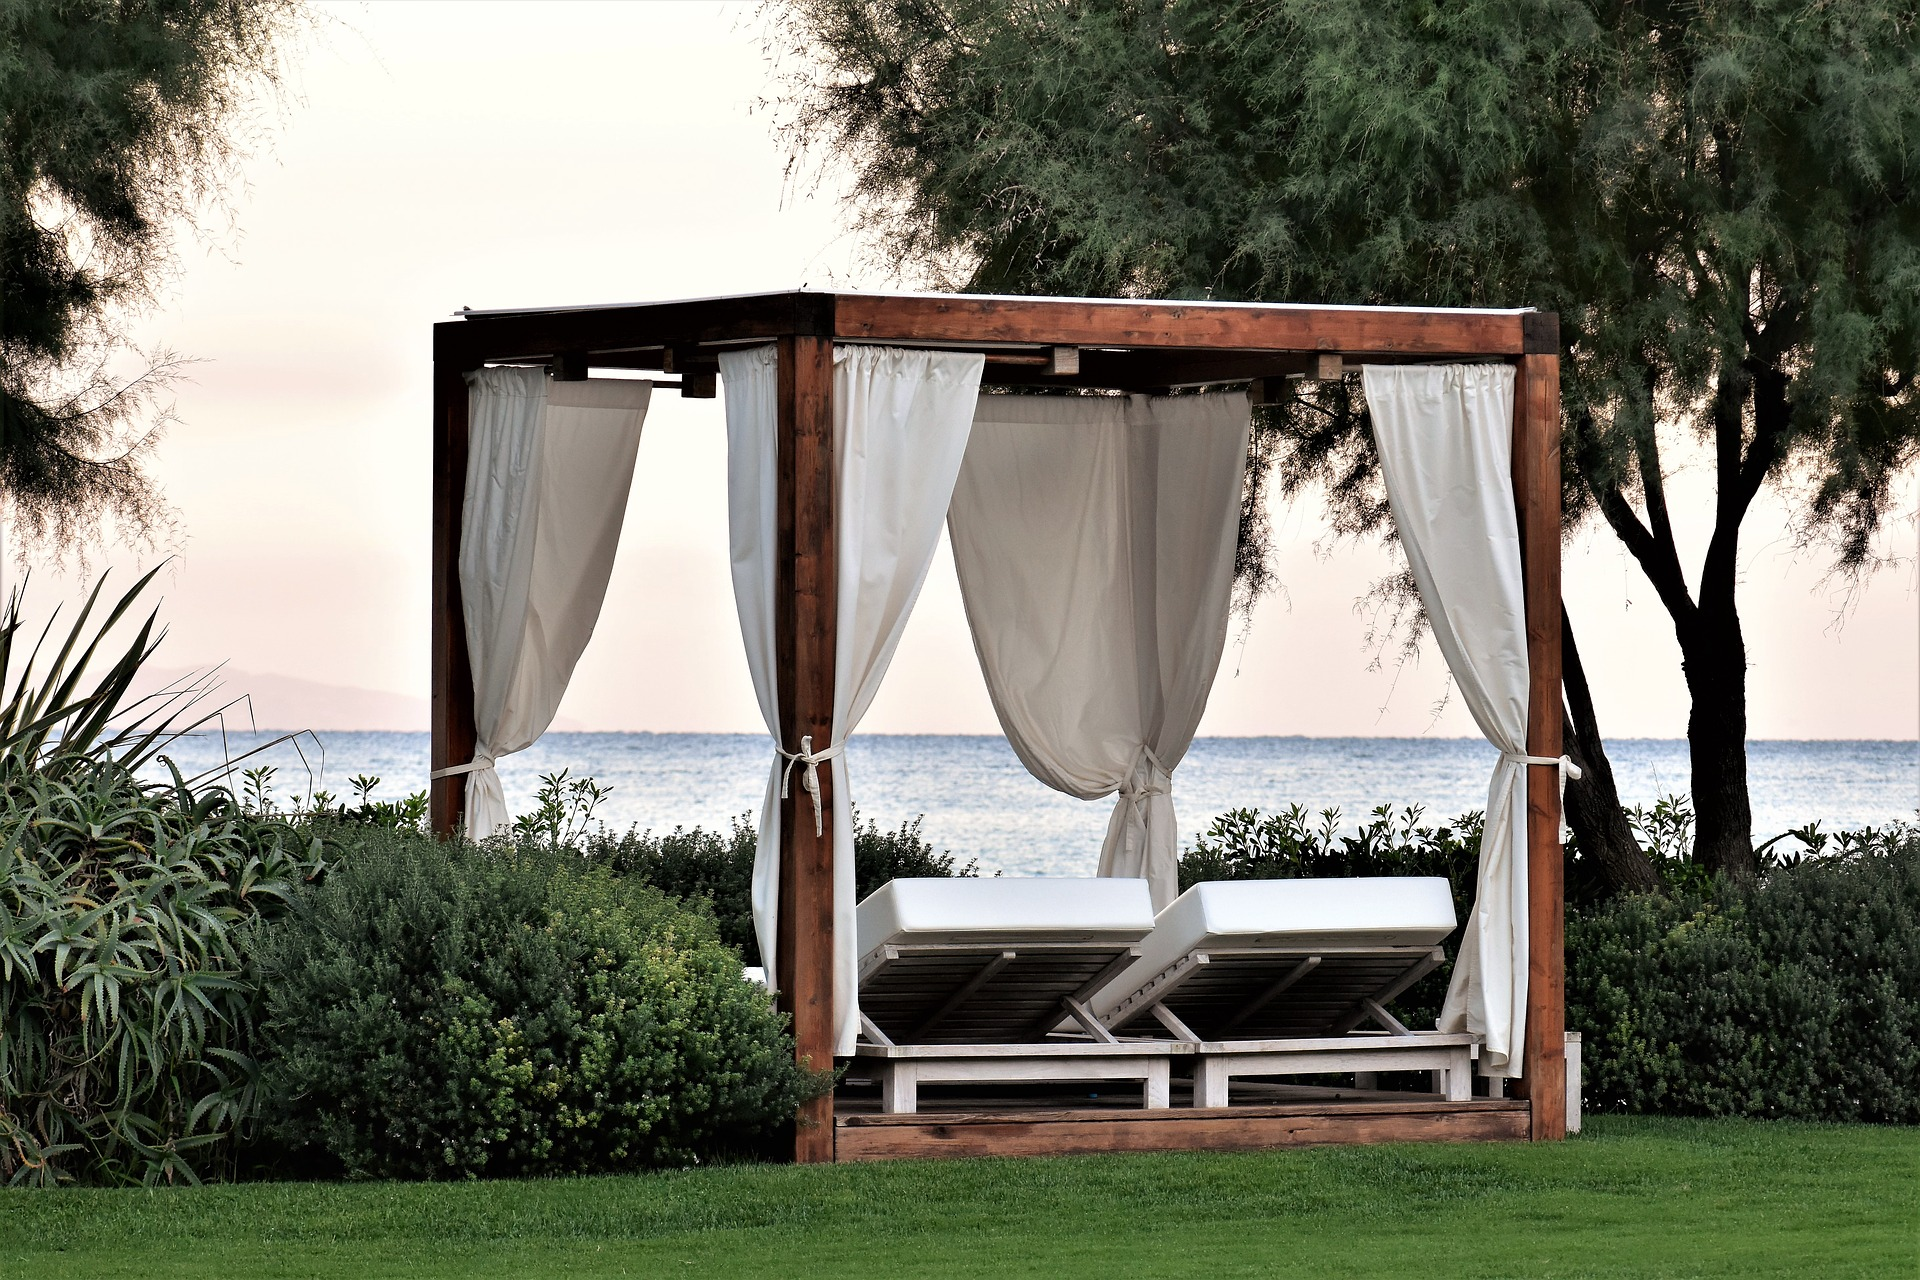 The Best Home Design Ideas for Your Outdoor Living Area bed outside